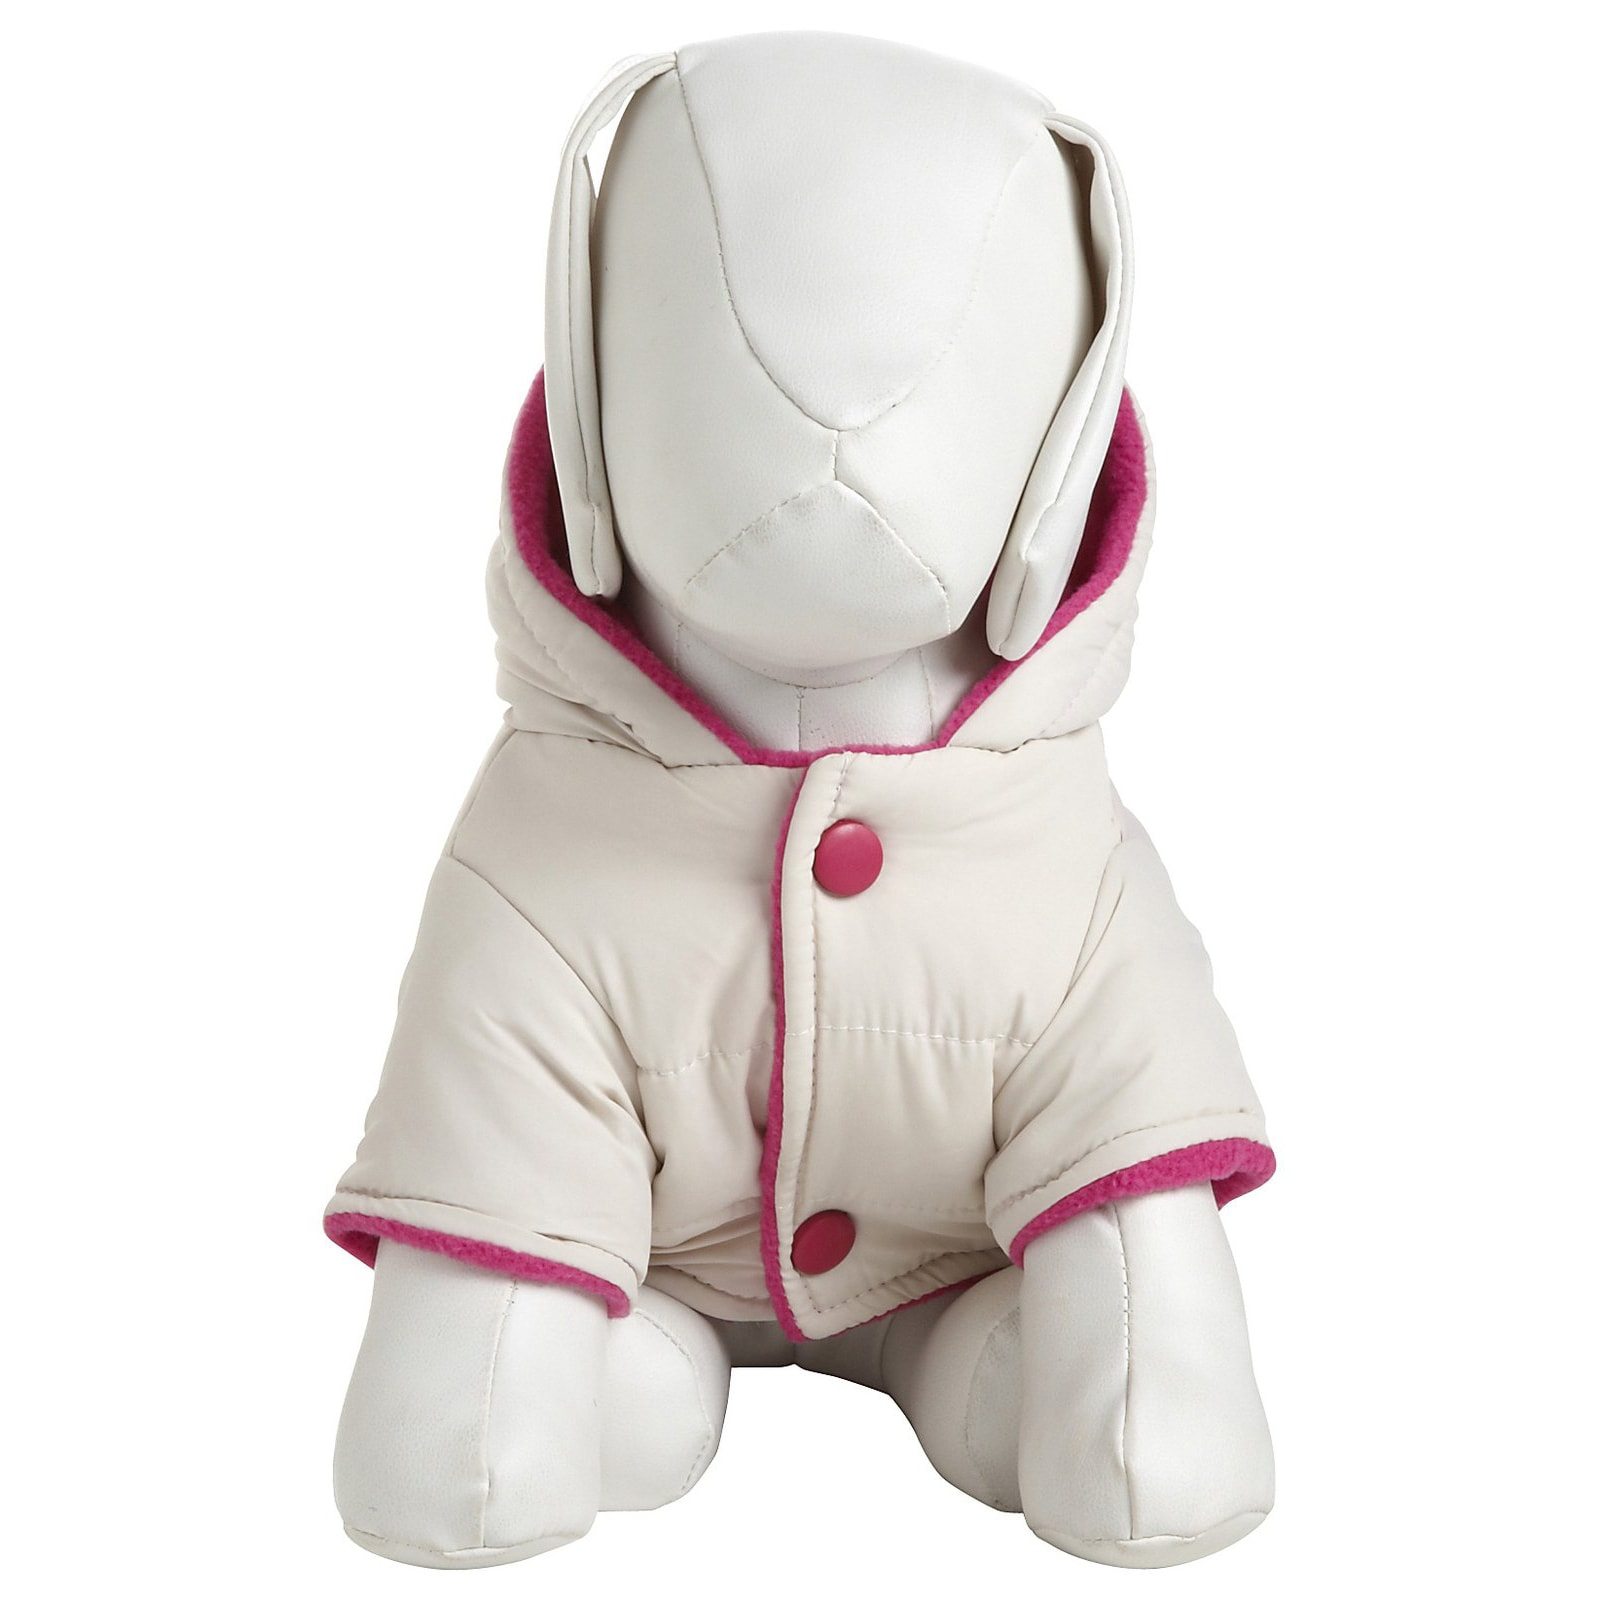 Petlife White and Pink Two-tone Jewel Polyester Fleece Pe...